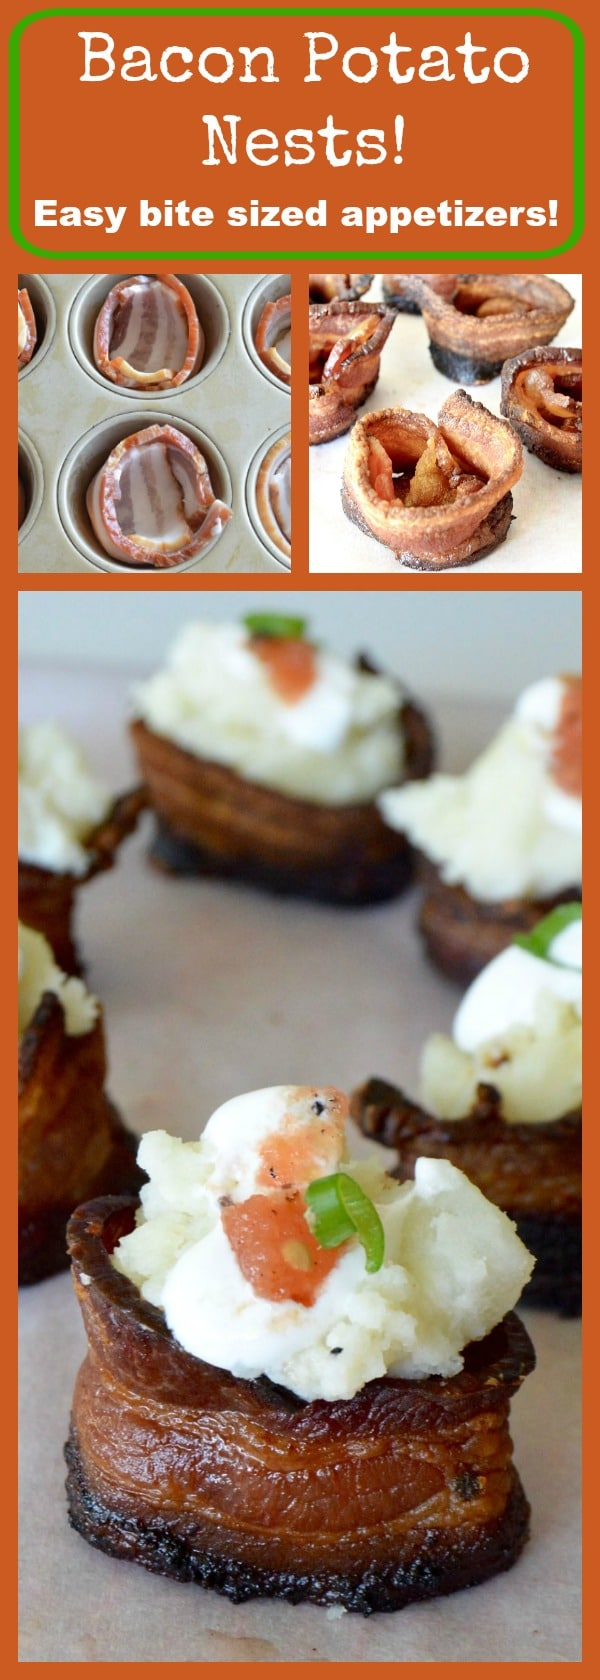 Bacon Potato Nests: Crispy bacon shaped into a basket, filled with creamy potatoes topped with a small dab of salsa, the perfect appetizer to prep the night before then assemble as your guests are arriving!